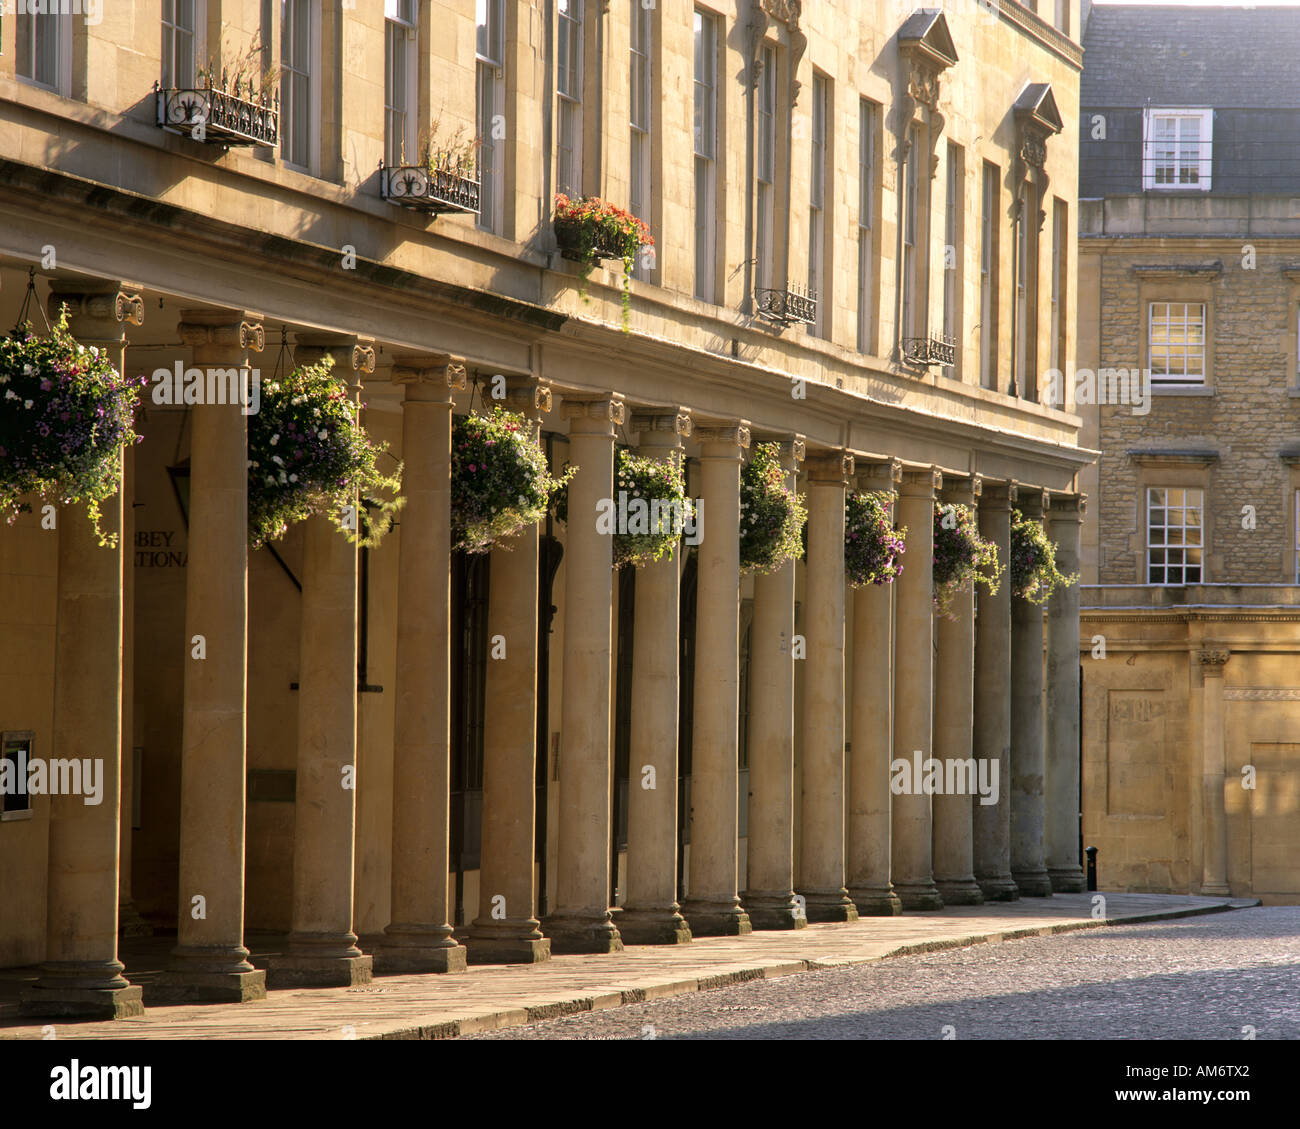 Go - SOMERSET : Bath Street Détail dans la ville de Bath Photo Stock